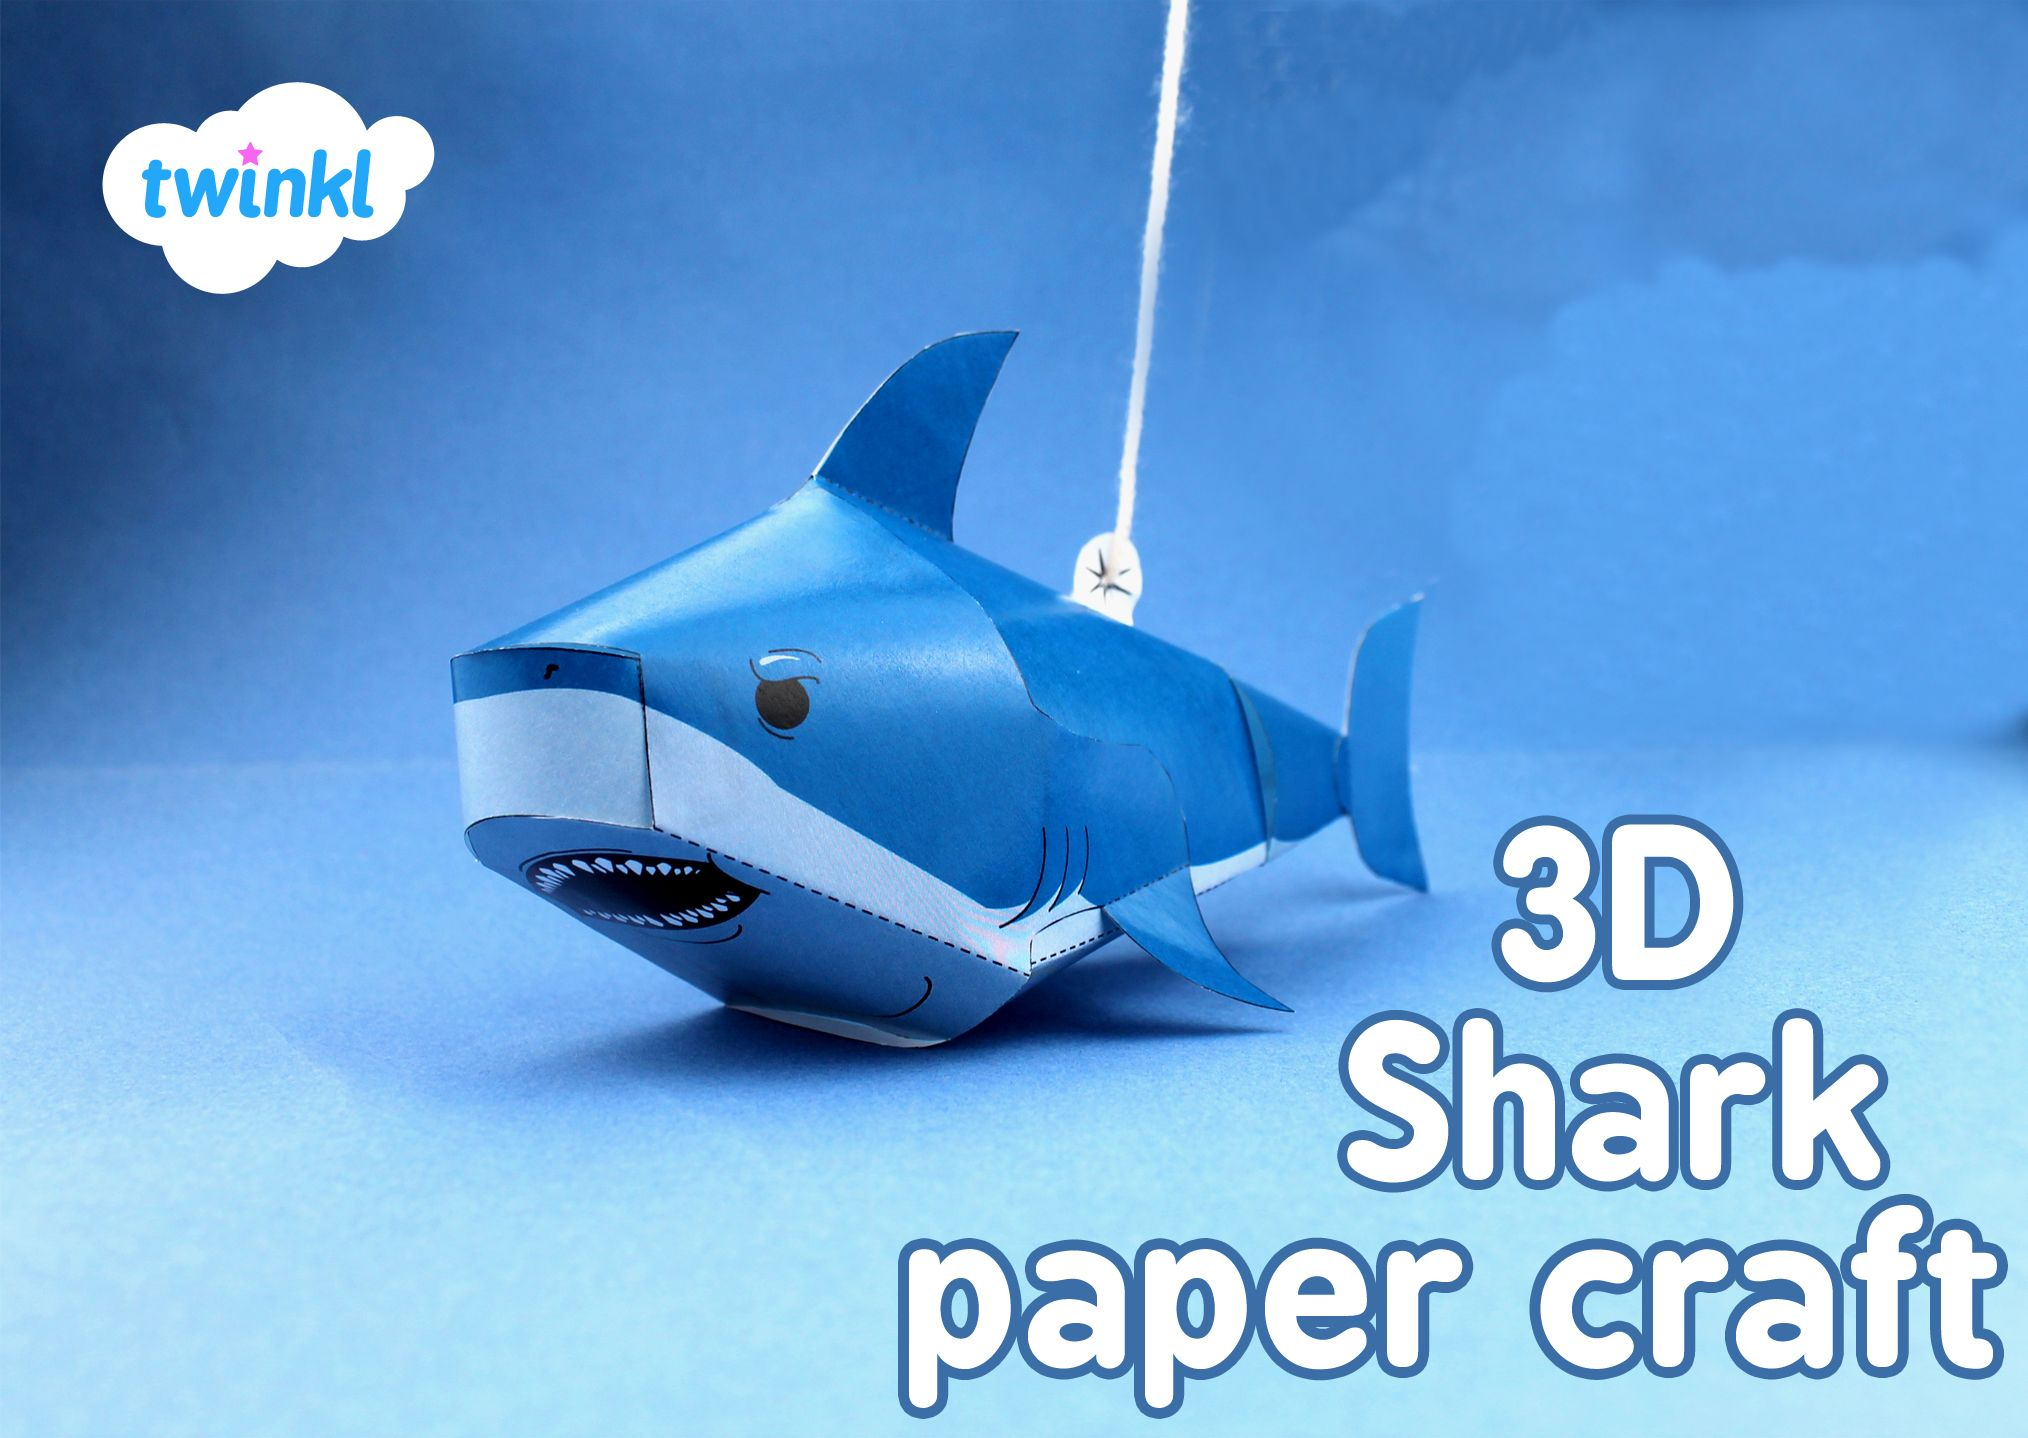 d shark paper craft print out and make in time for shark week 3d shark paper craft print out and make in time for shark week shark